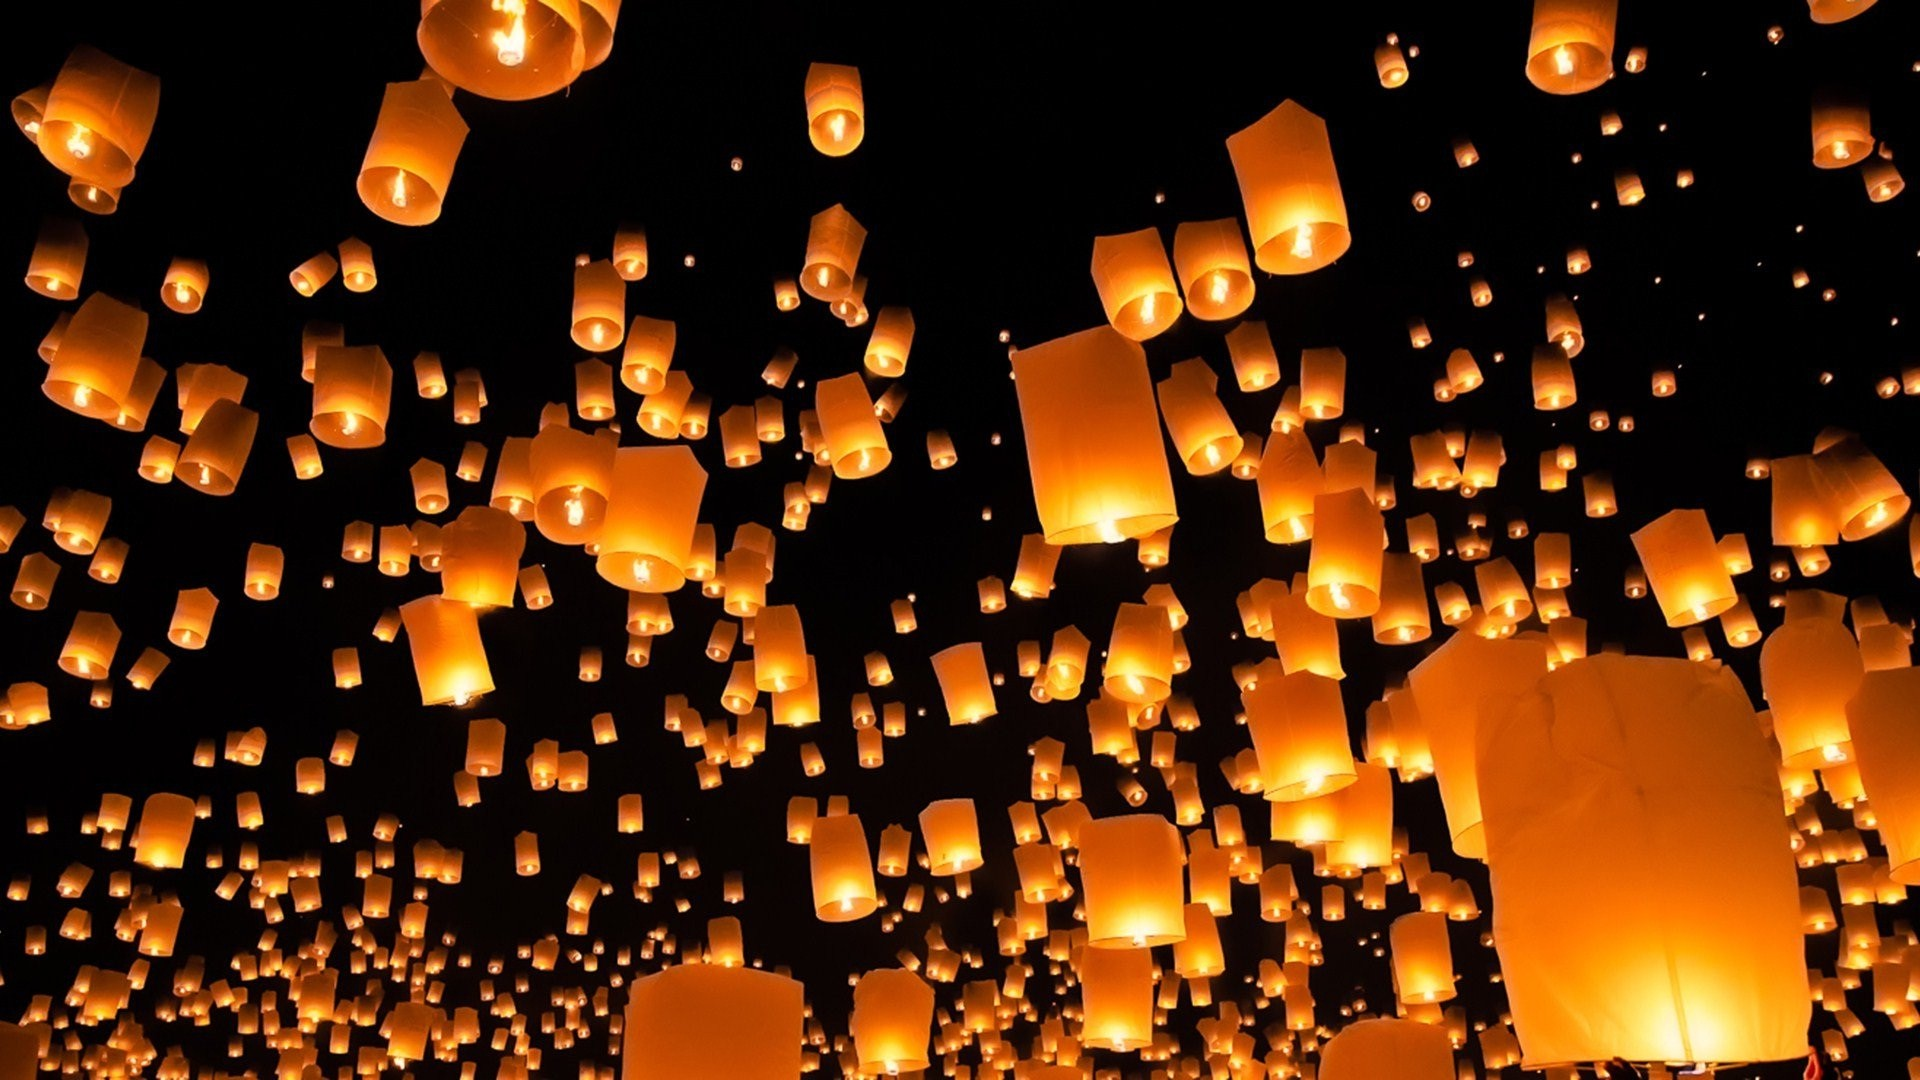 1920x1080 Candle-lights-flying-amazing-wallpapers 101 Awesome Wallpapers To Download  For Your